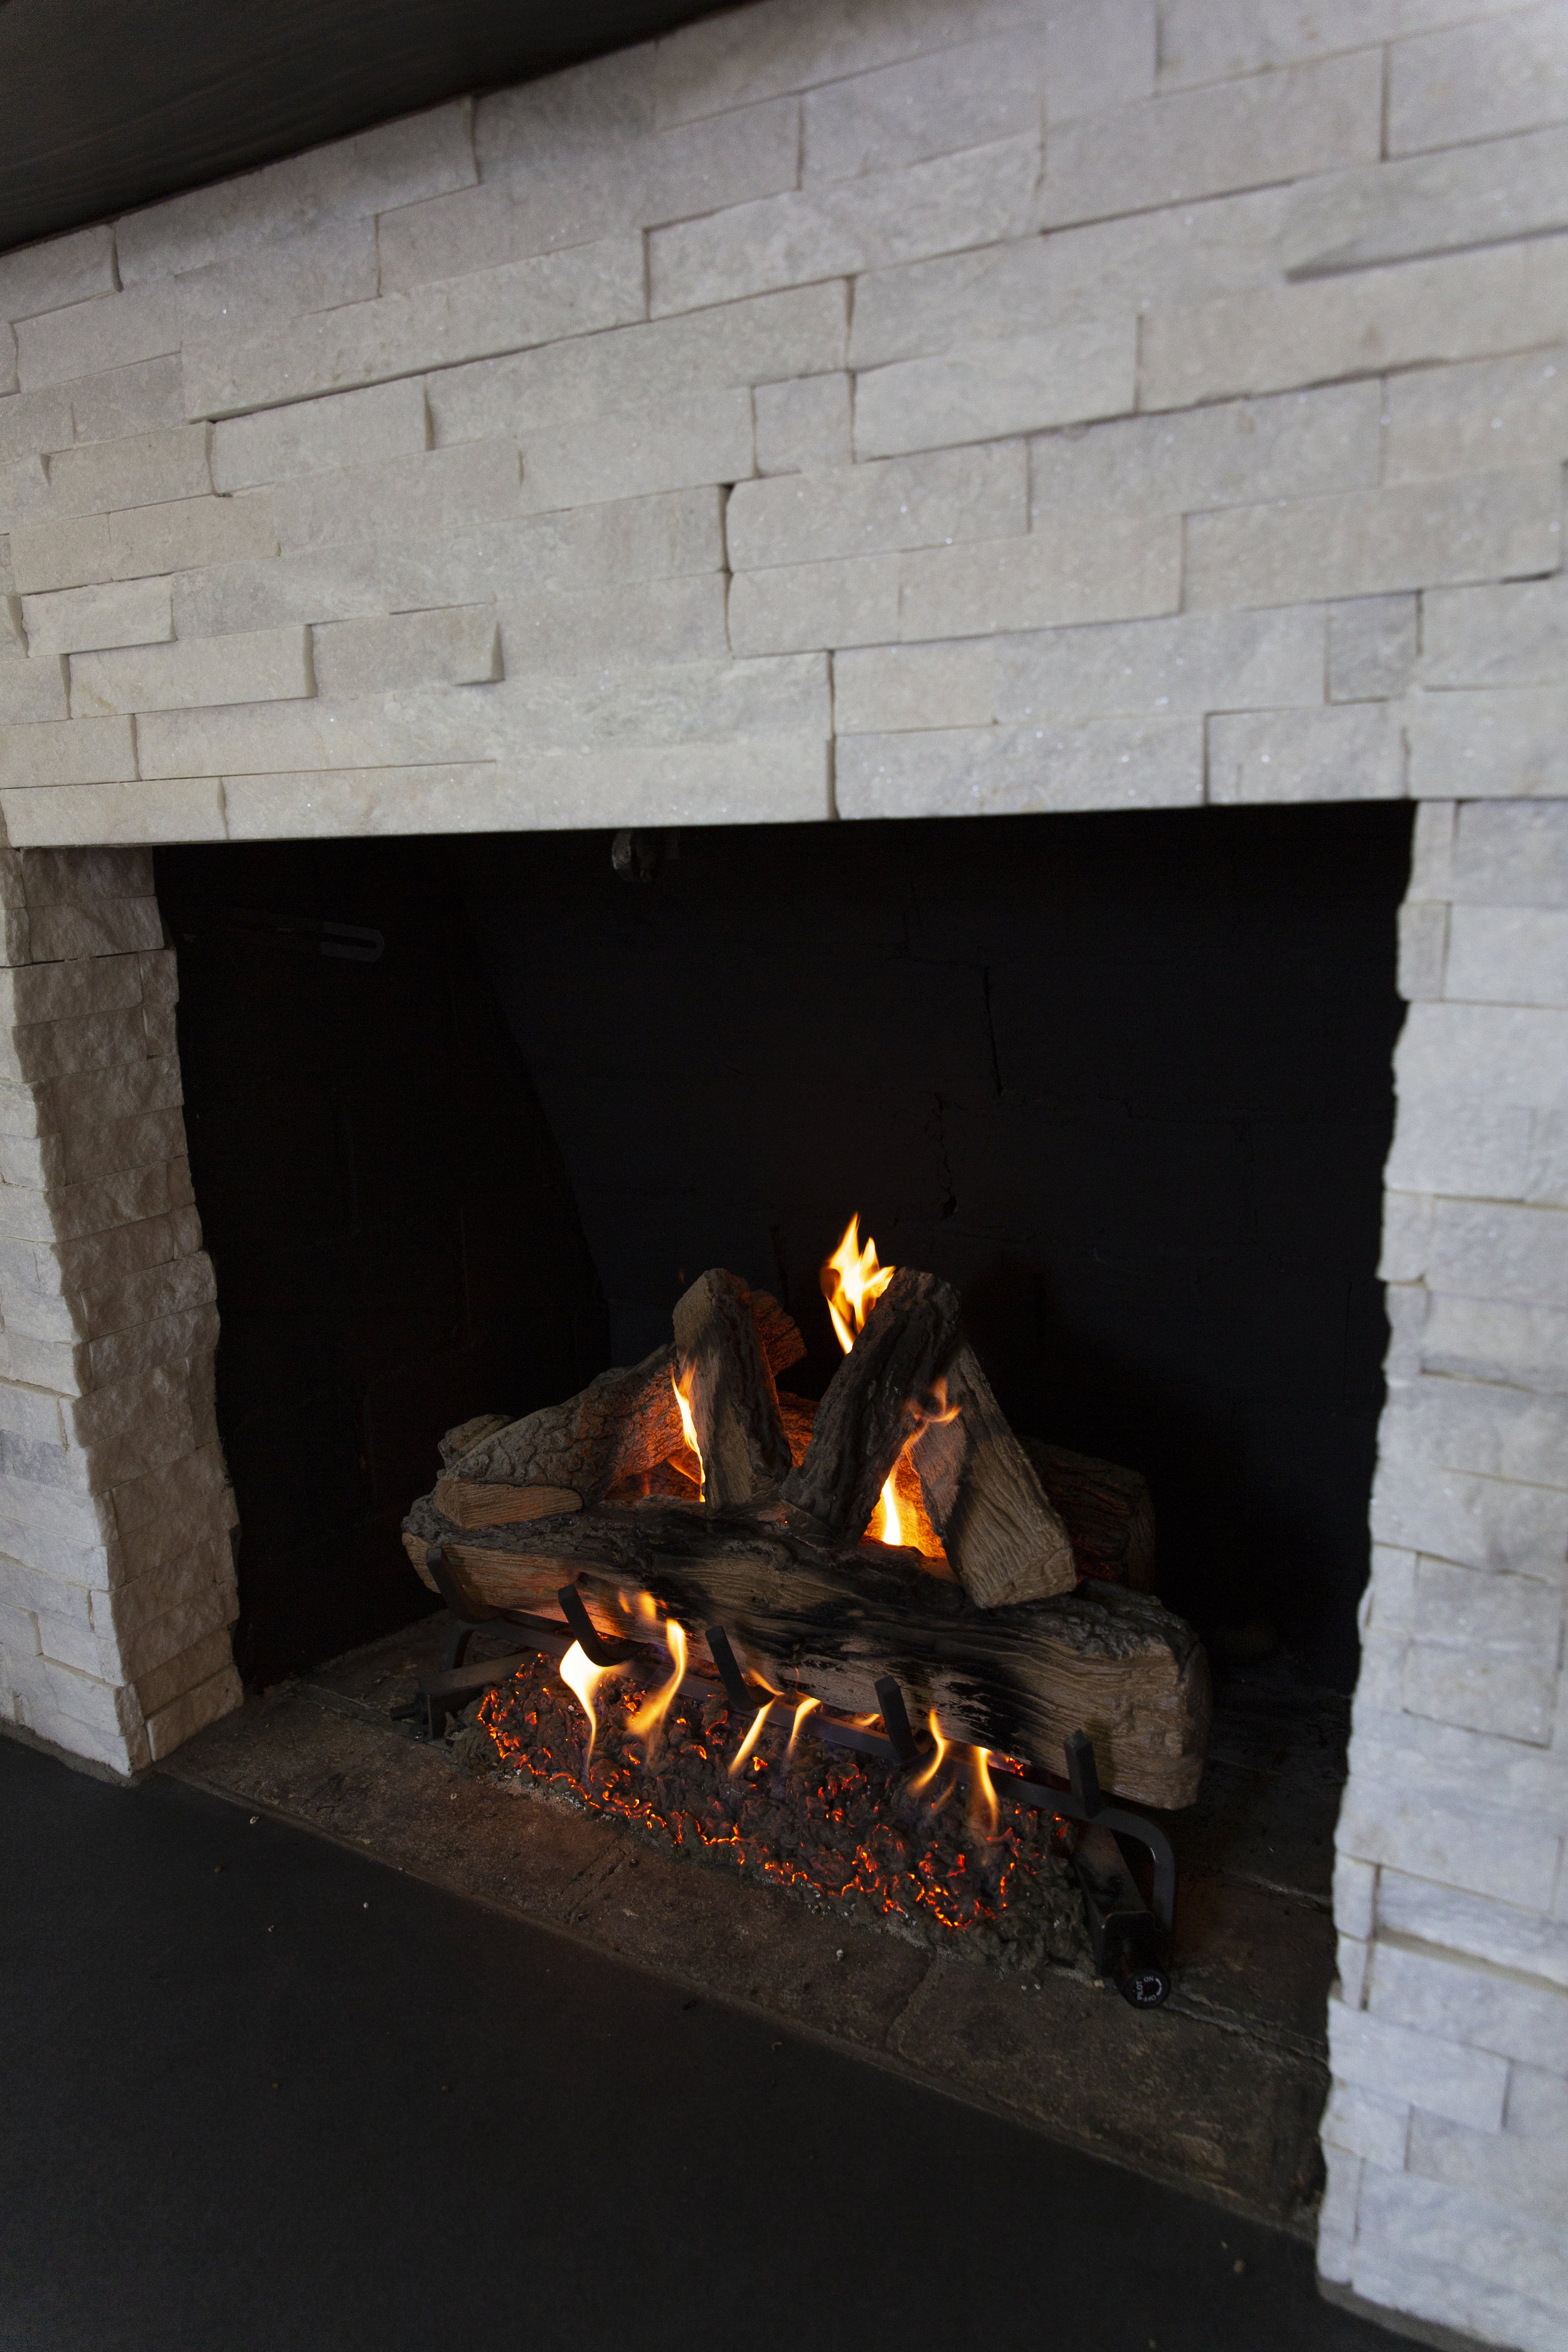 fireplace 38 lit.jpg